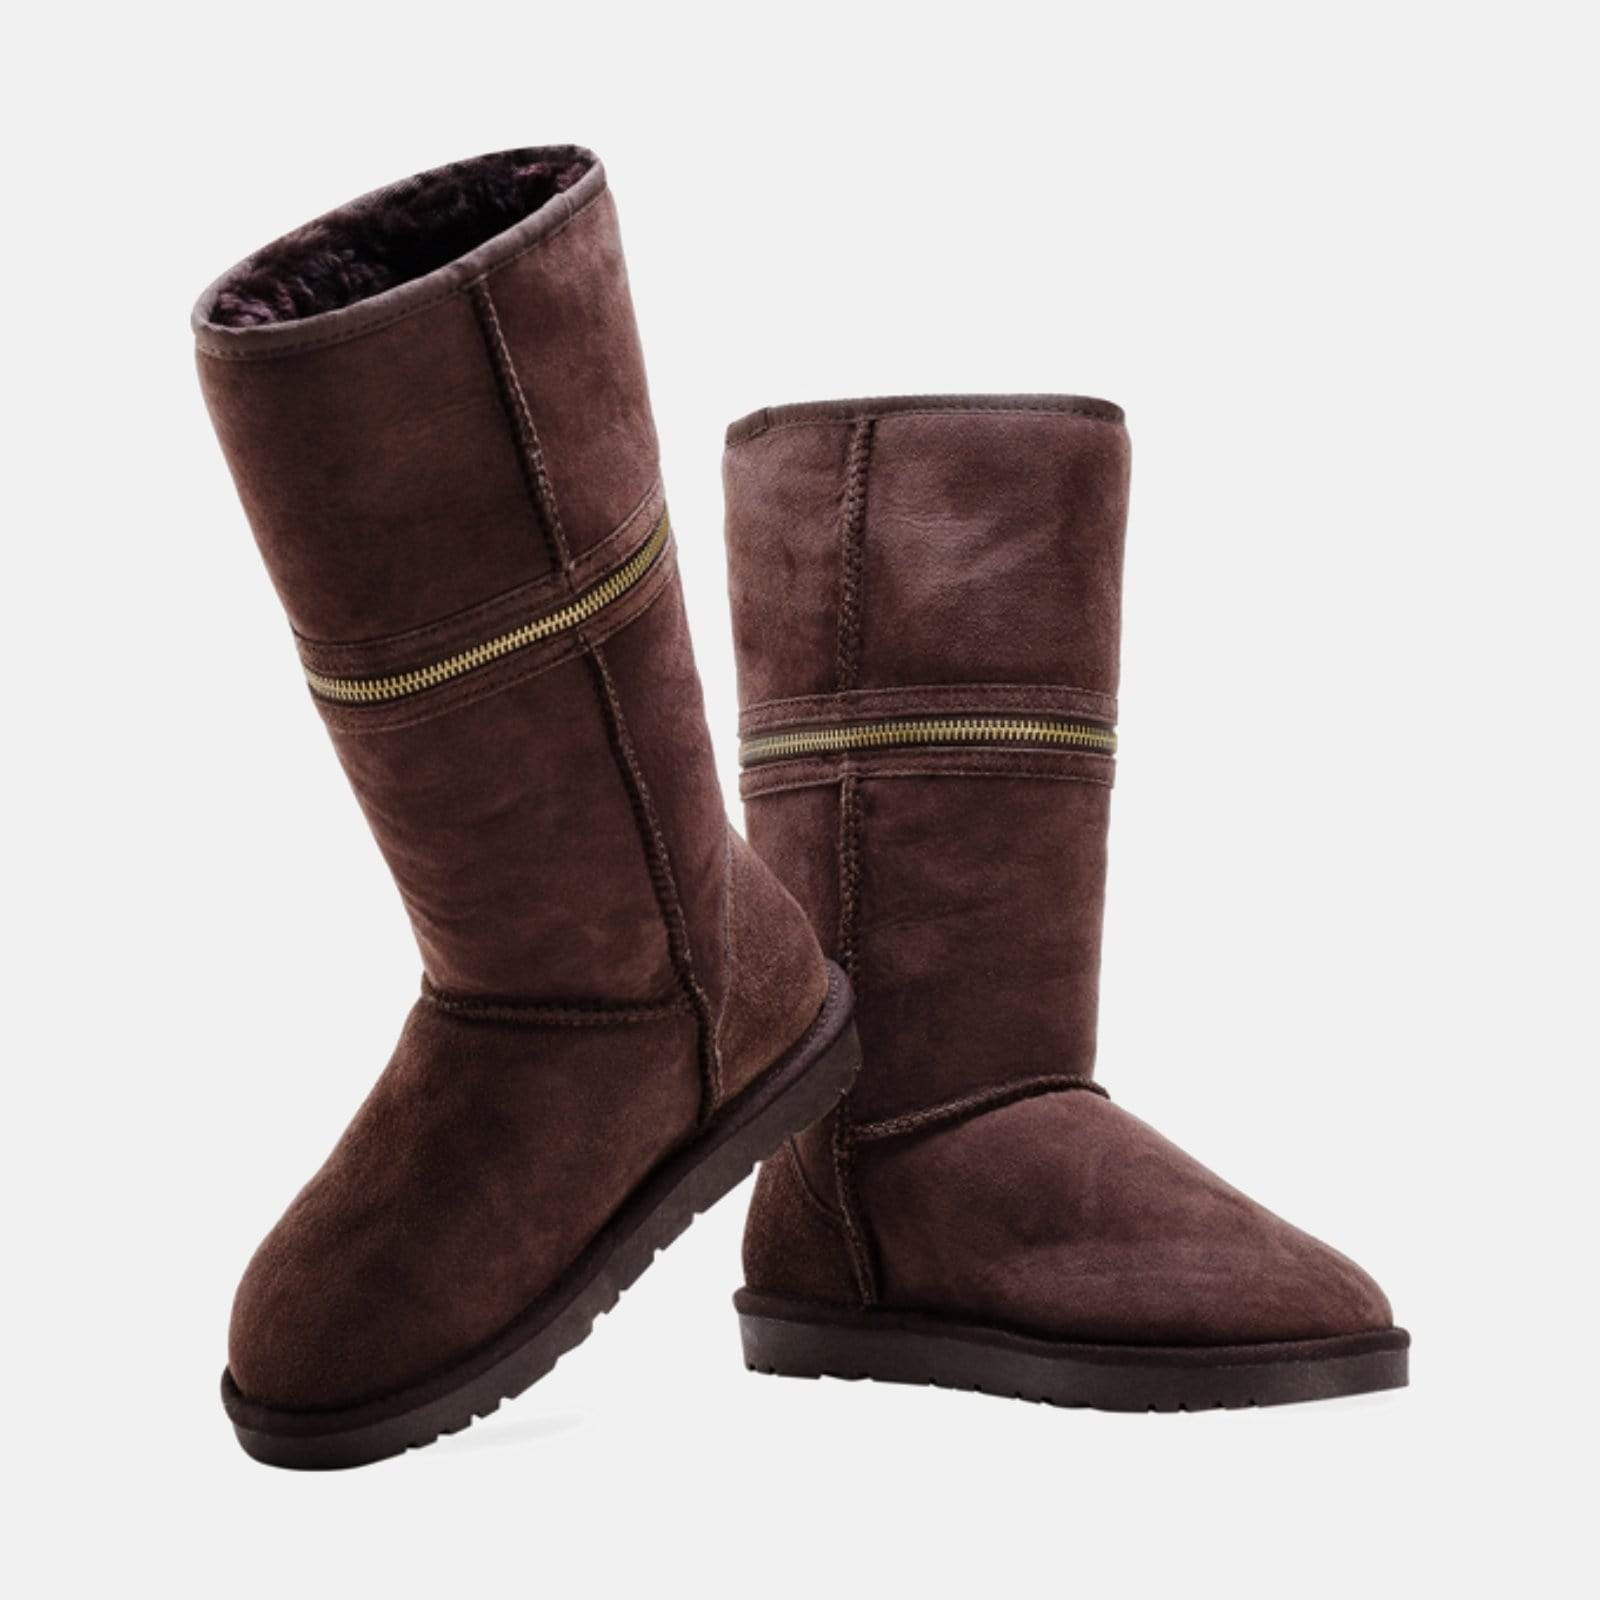 Redfoot Footwear LUCY CHOCOLATE - Australian Sheepskin